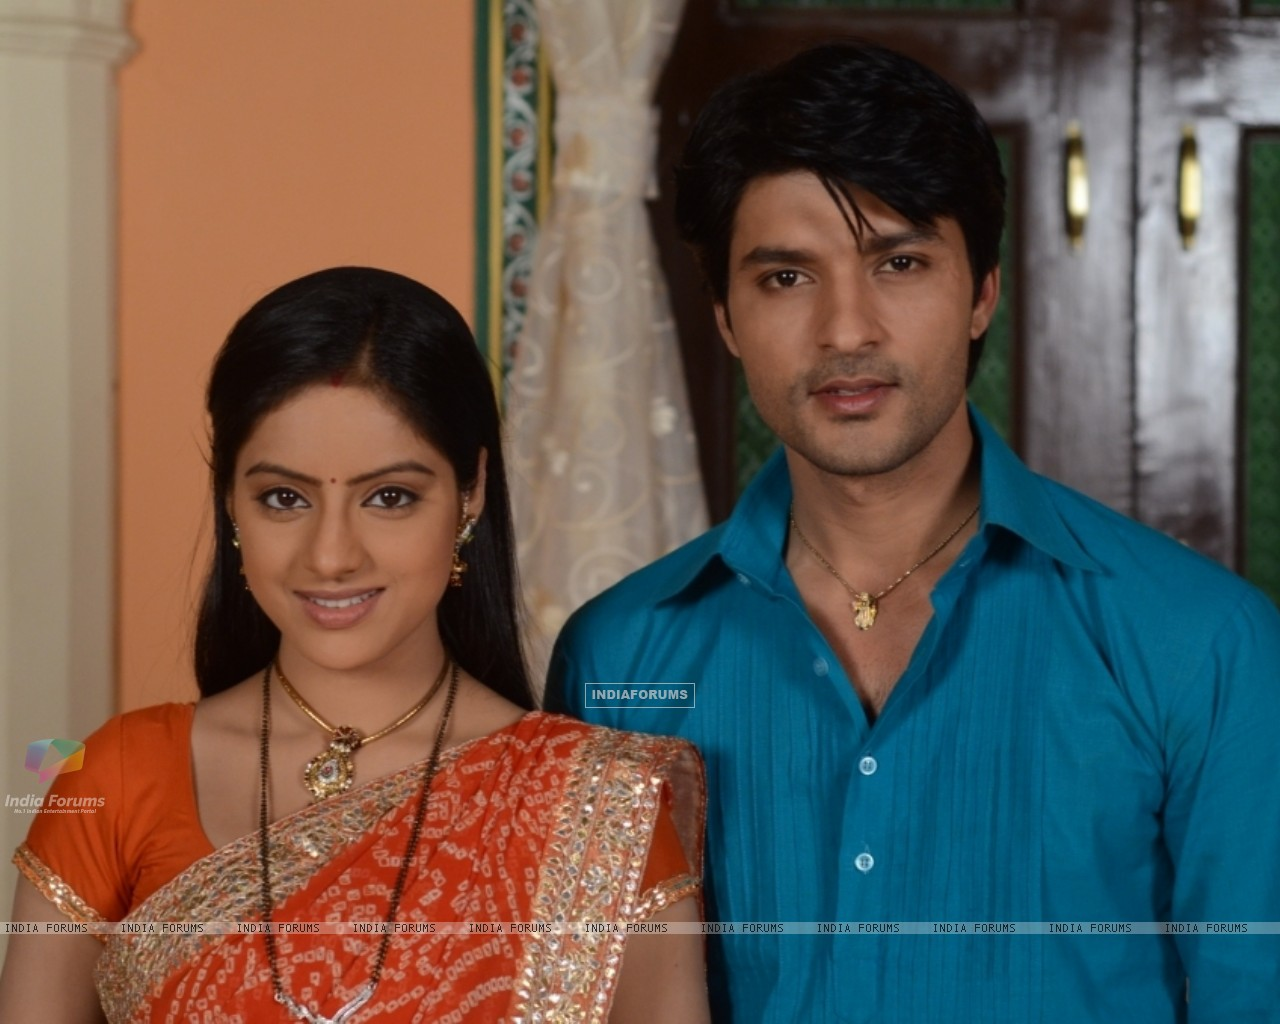 Wallpaper - Anas Rashid and Deepika Singh as Sooraj and Sandhya in ...